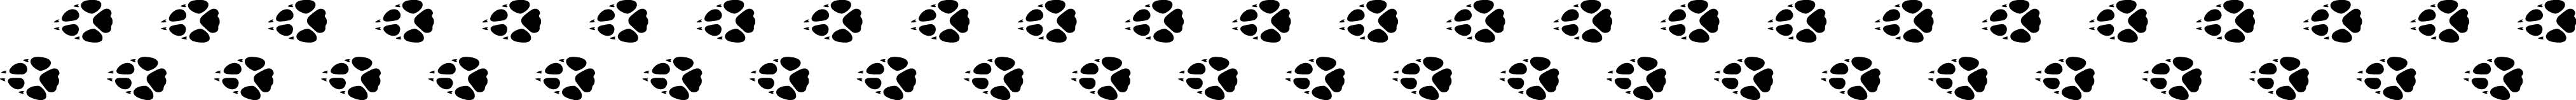 fox paw prints small